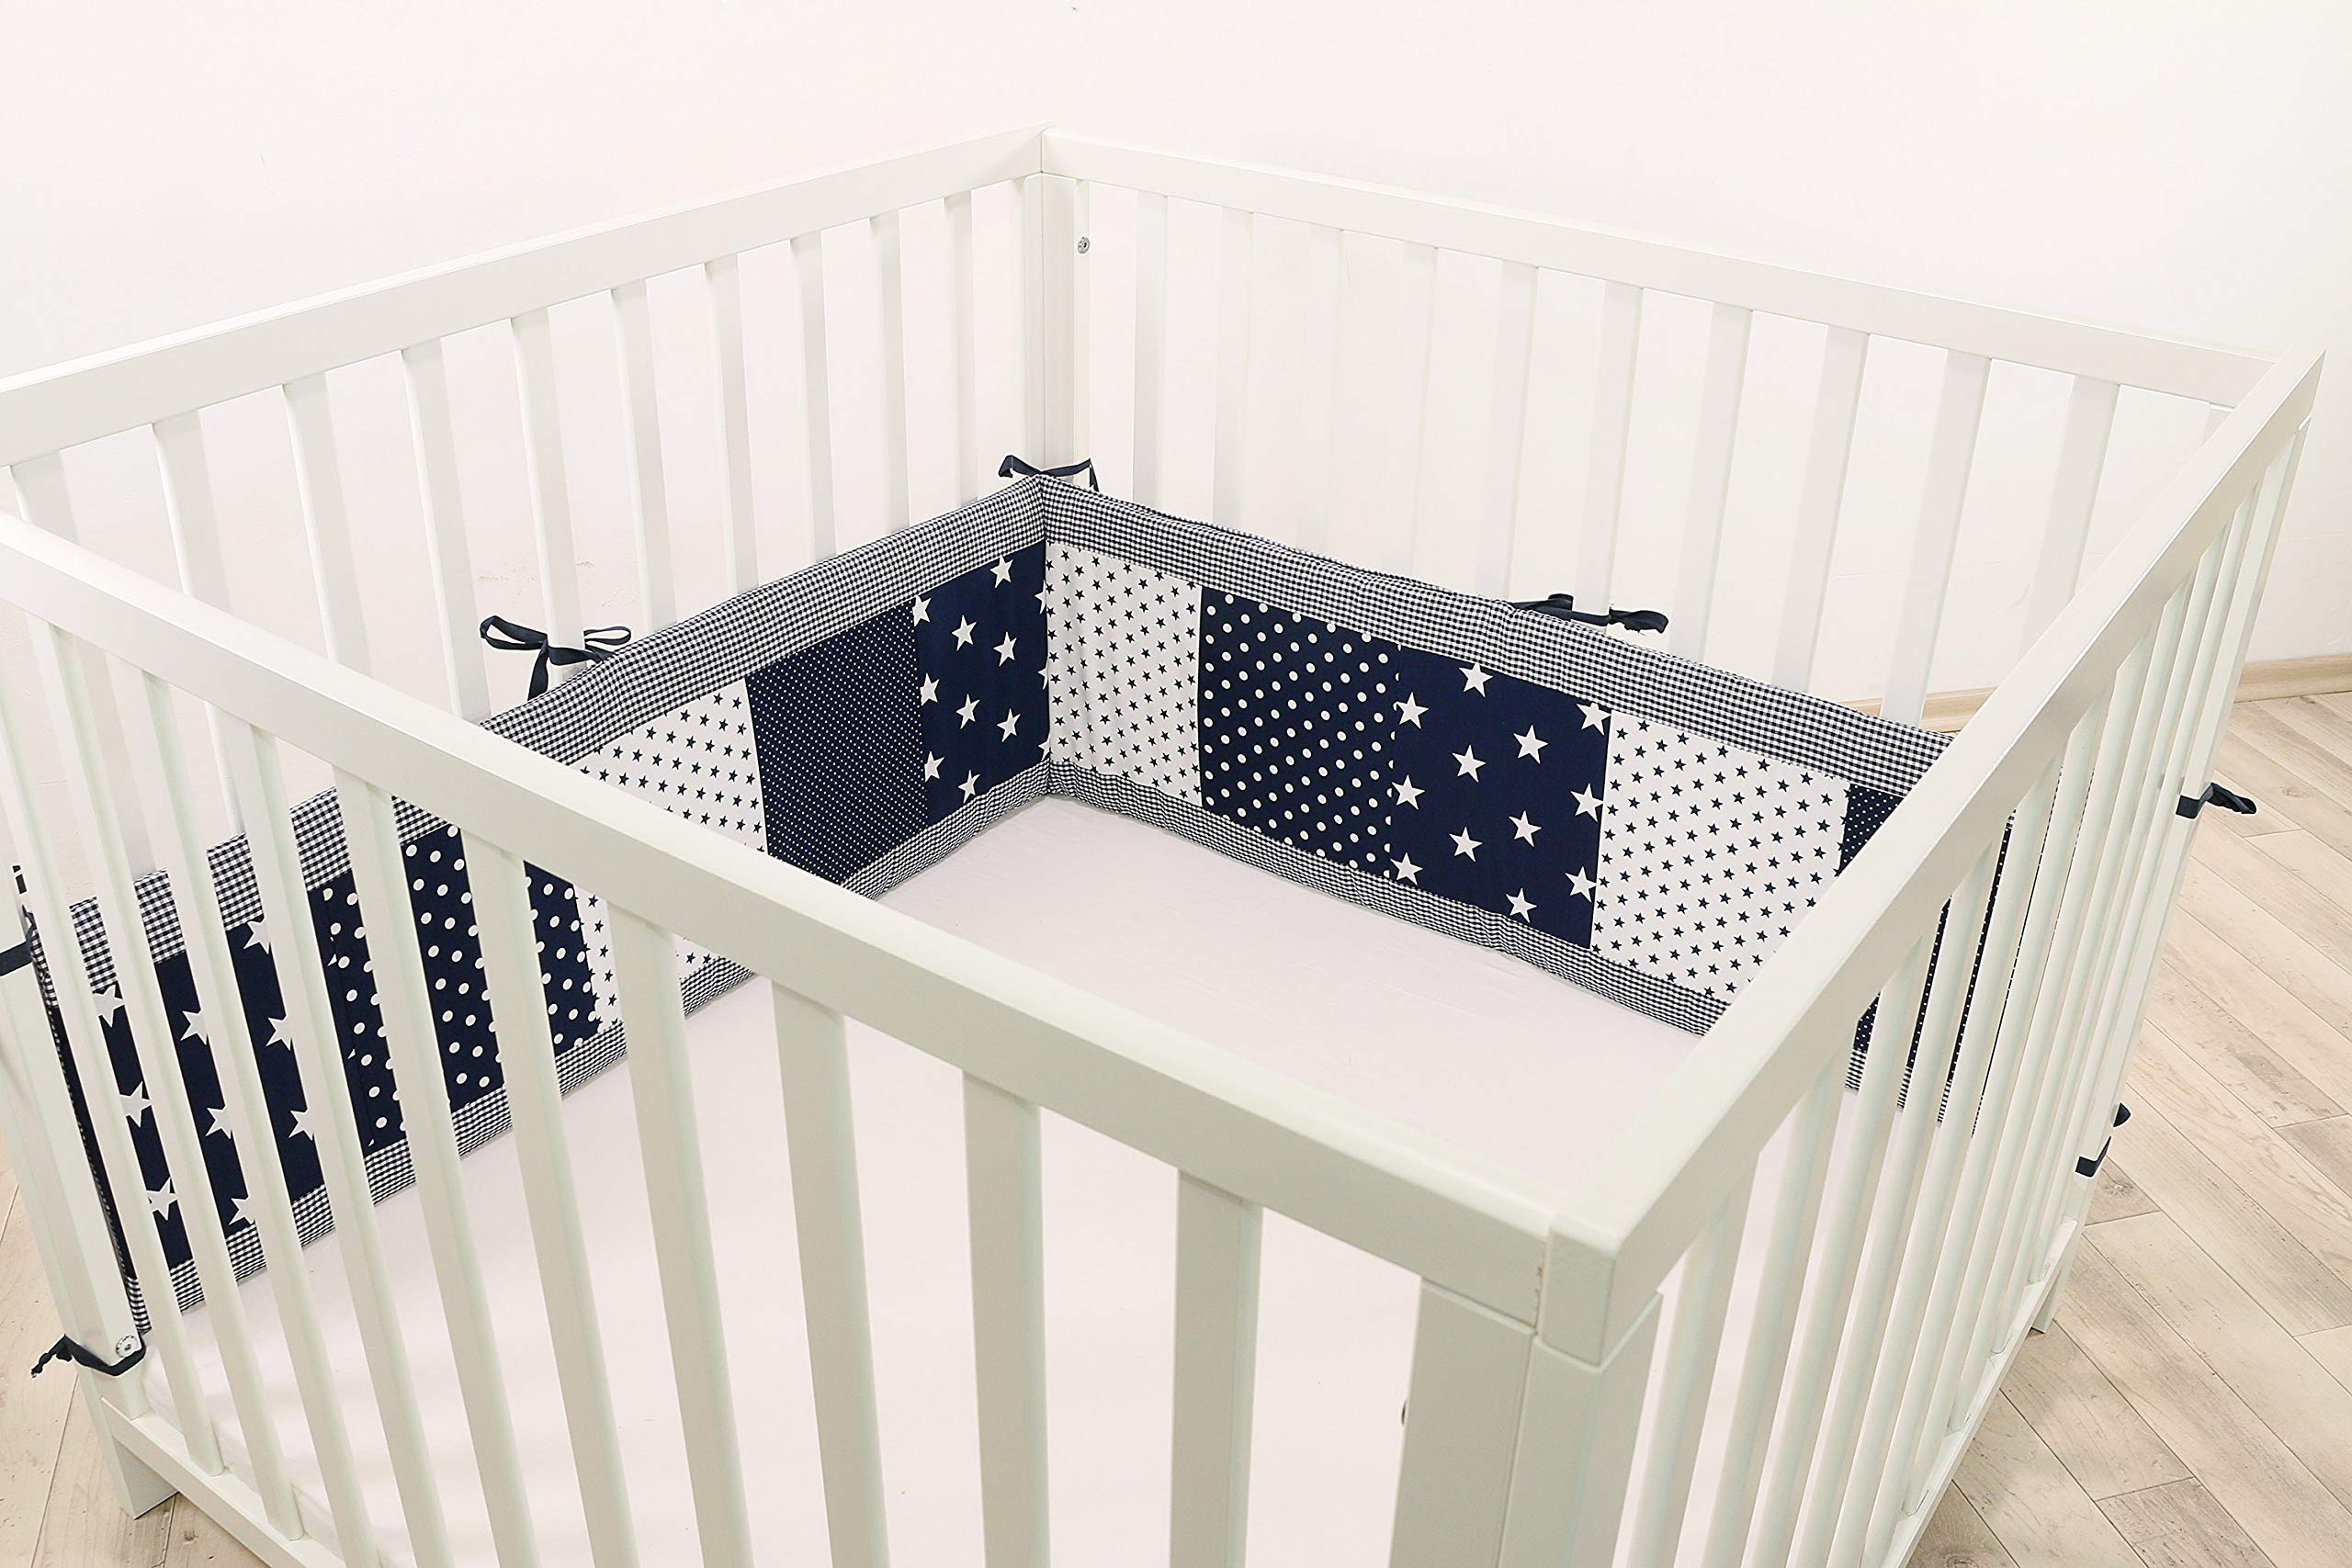 ULLENBOOM® Bumper- Blue Stars (200x 30cm Baby playpen Bumper, 100x 100cm playpen Bumper Pads for The Head Area) ULLENBOOM This 200x 30cm patchwork bumper serves as a protective insert and surround for 100x 100cm playpens, to provide babies with protection- especially head protection- from playpen bars The sizes 200x 30cm and 400x 30cm (full surround) are for playpens- the 'full surround' bumper comes in two sections. ULLENBOOM also offers additional sizes for 140x 70cm and 120x 60cm cots These bumpers can be washed at 30 °C and the materials used are certified according to the Oeko-Tex standard (tested for harmful substances, hypoallergenic); smooth outer fabric: 100% cotton (Oeko-Tex); soft, thick wadding: 100% polyester (Oeko-Tex) 1